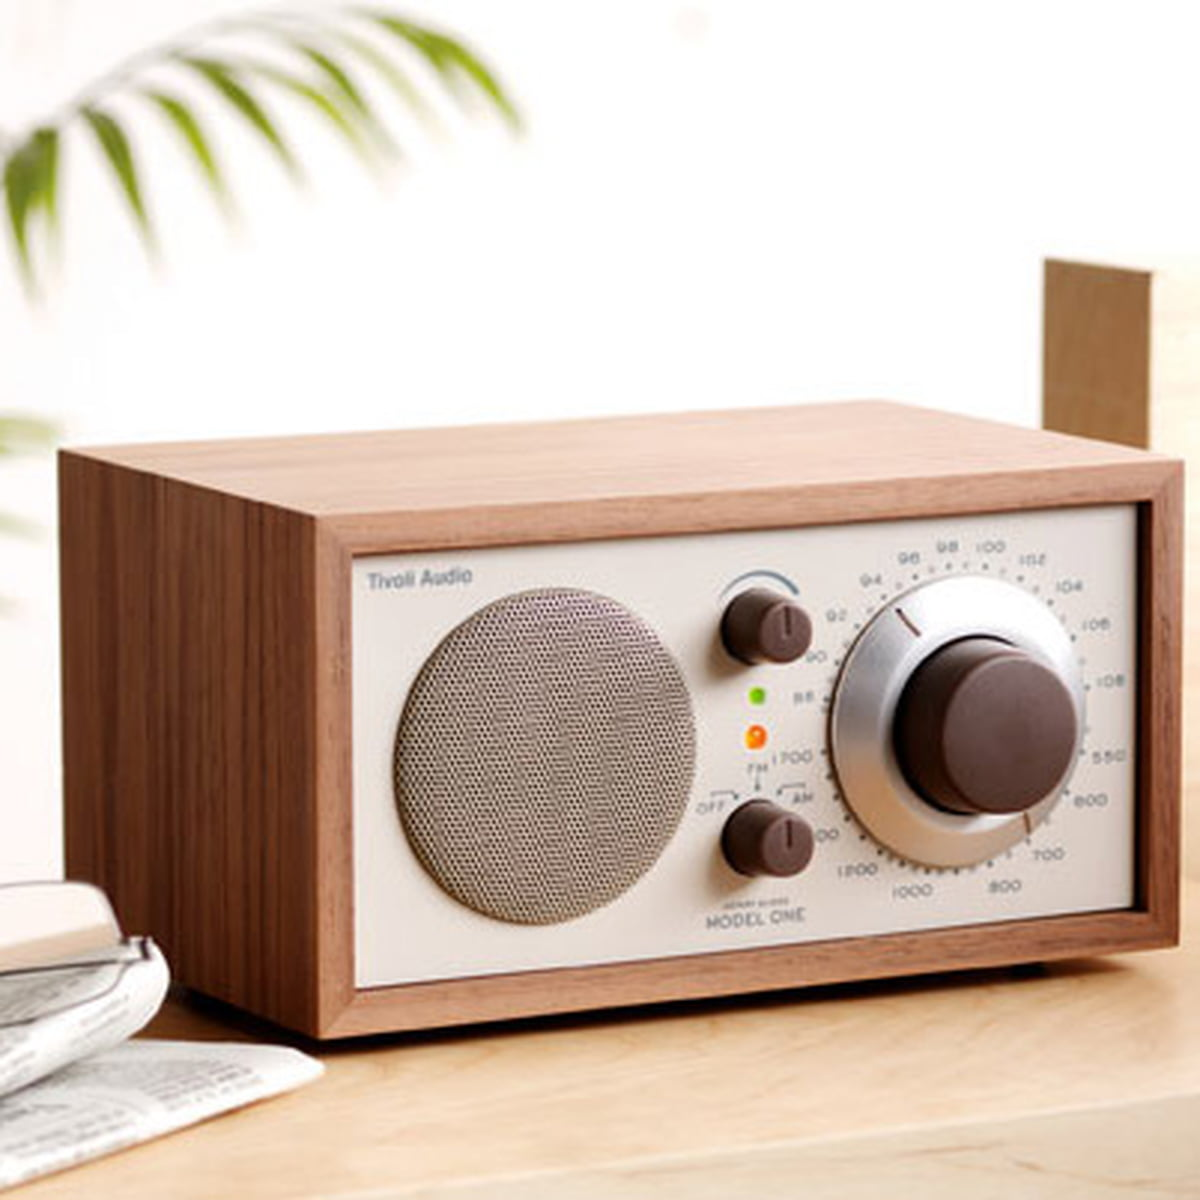 Radio från Tivoli Audio